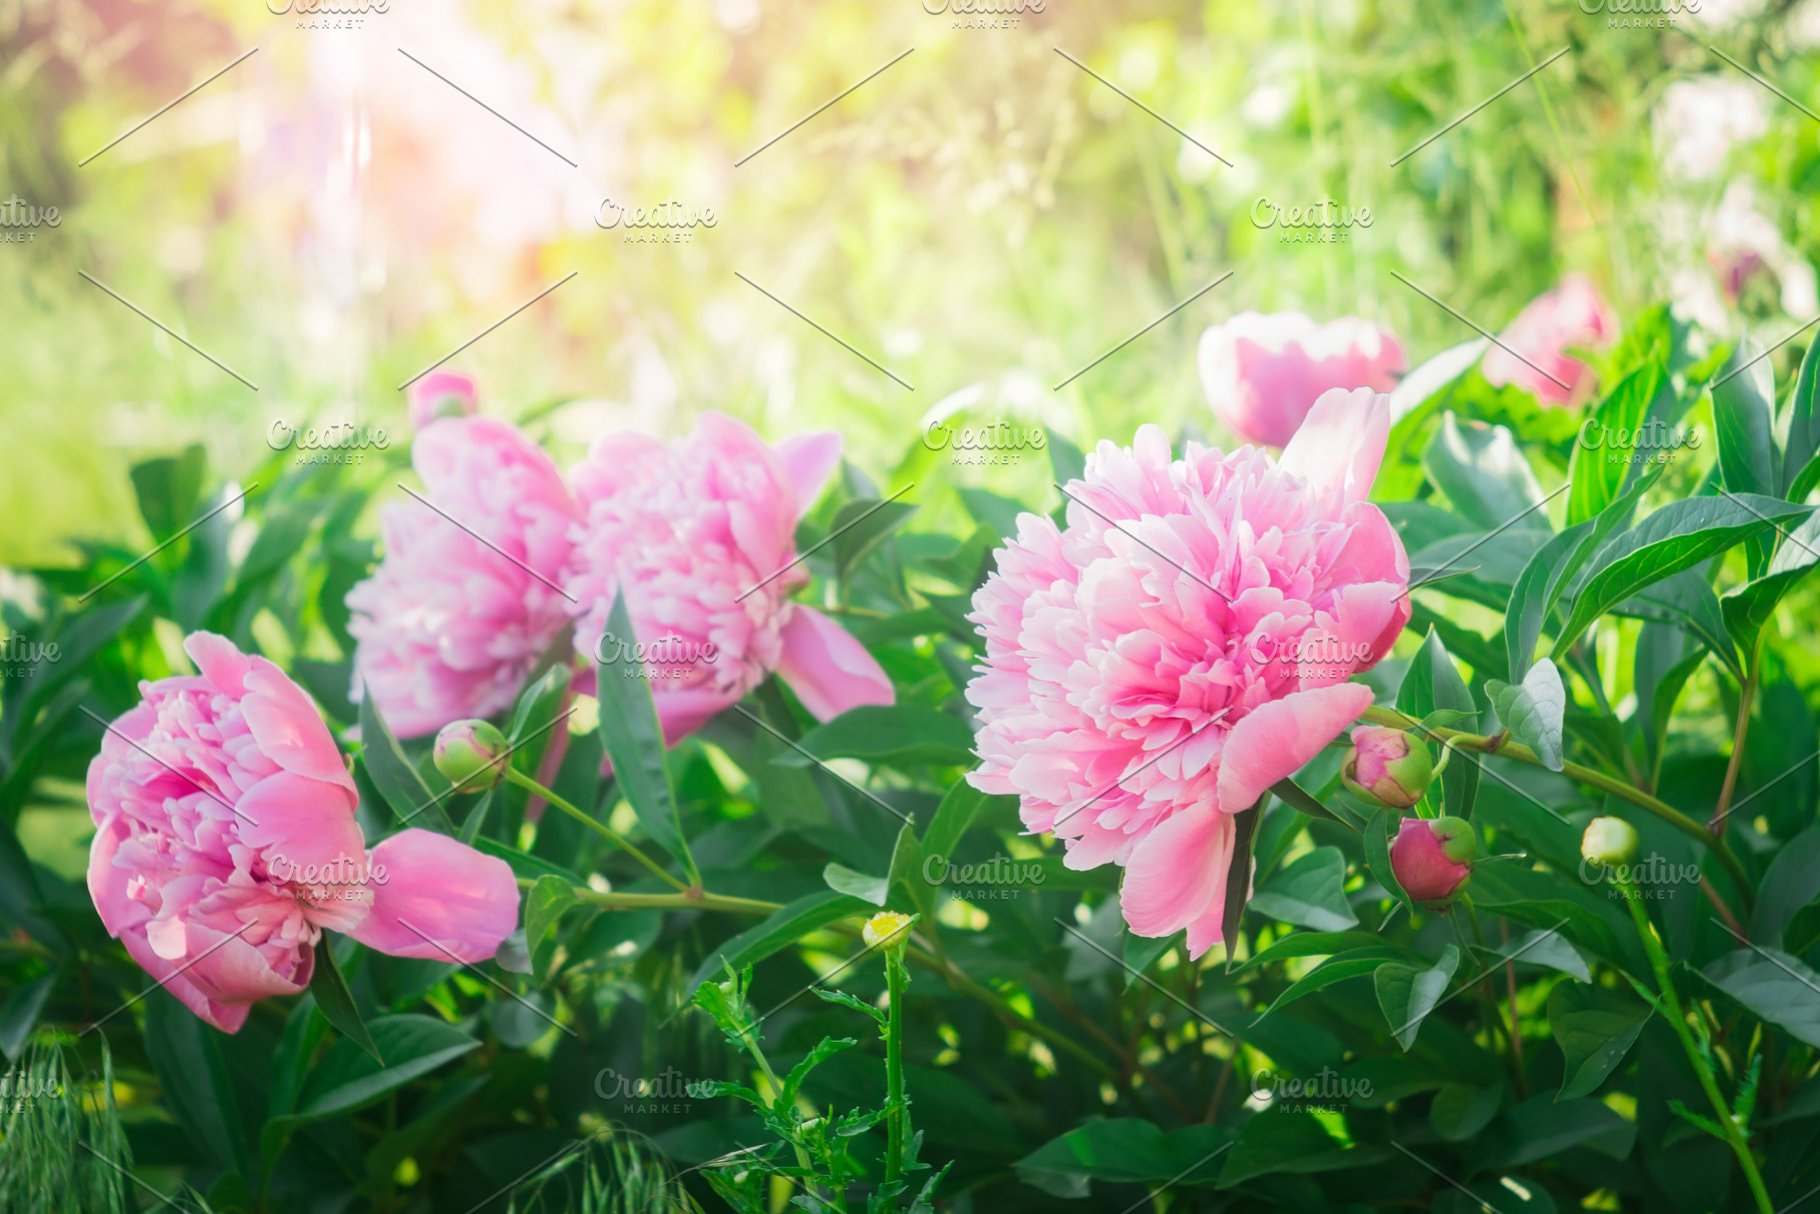 Flowering Peonies Pink Flowers Pink High Quality Nature Stock